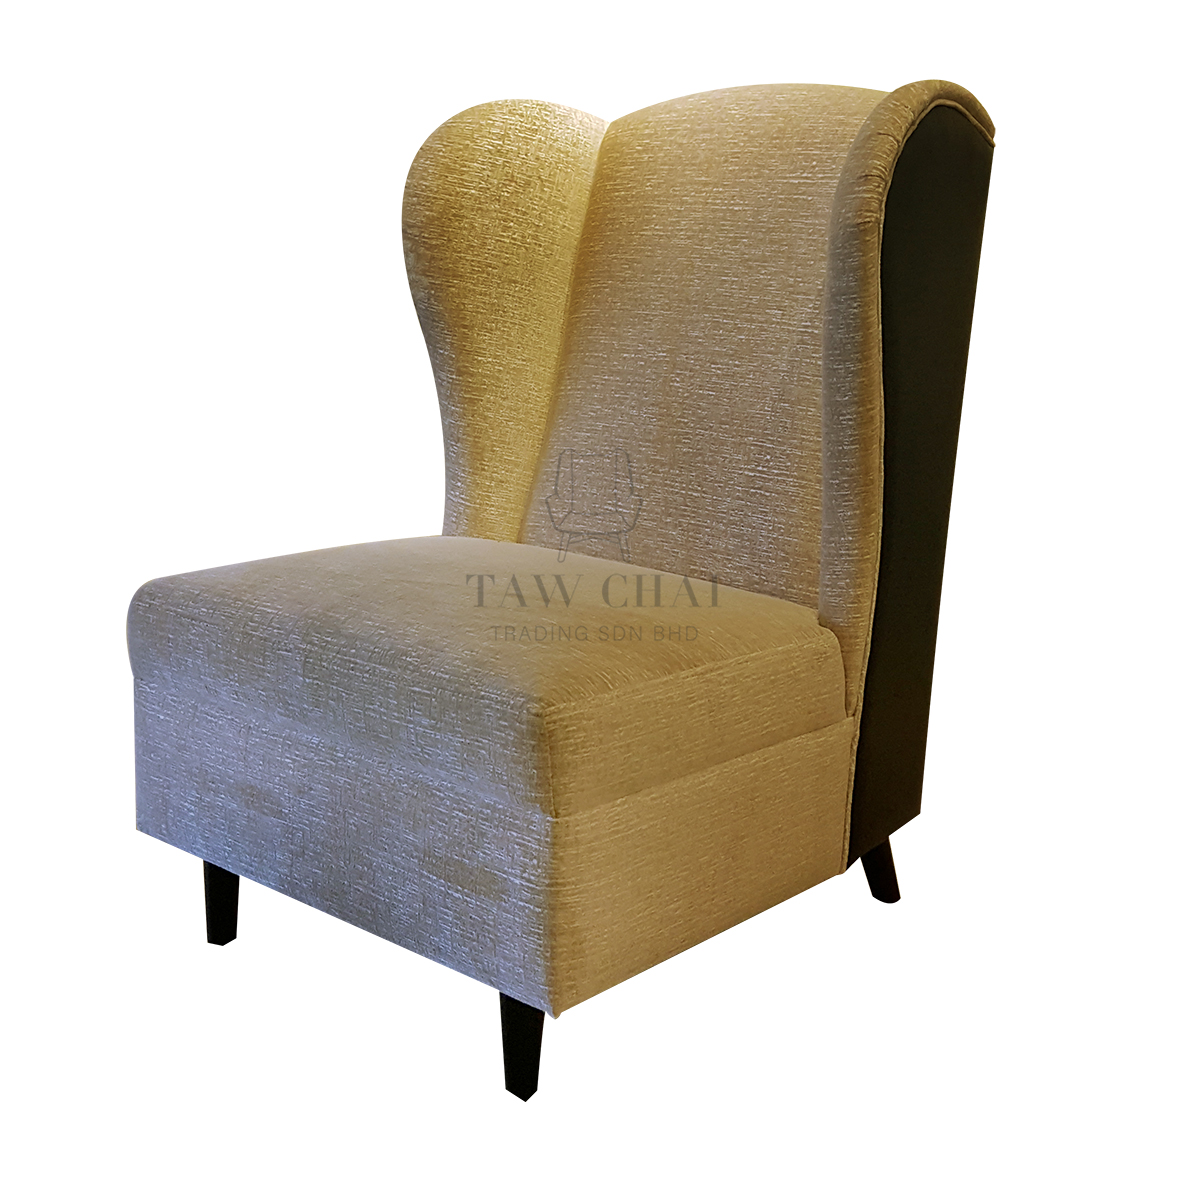 Taw Chai Furniture Product